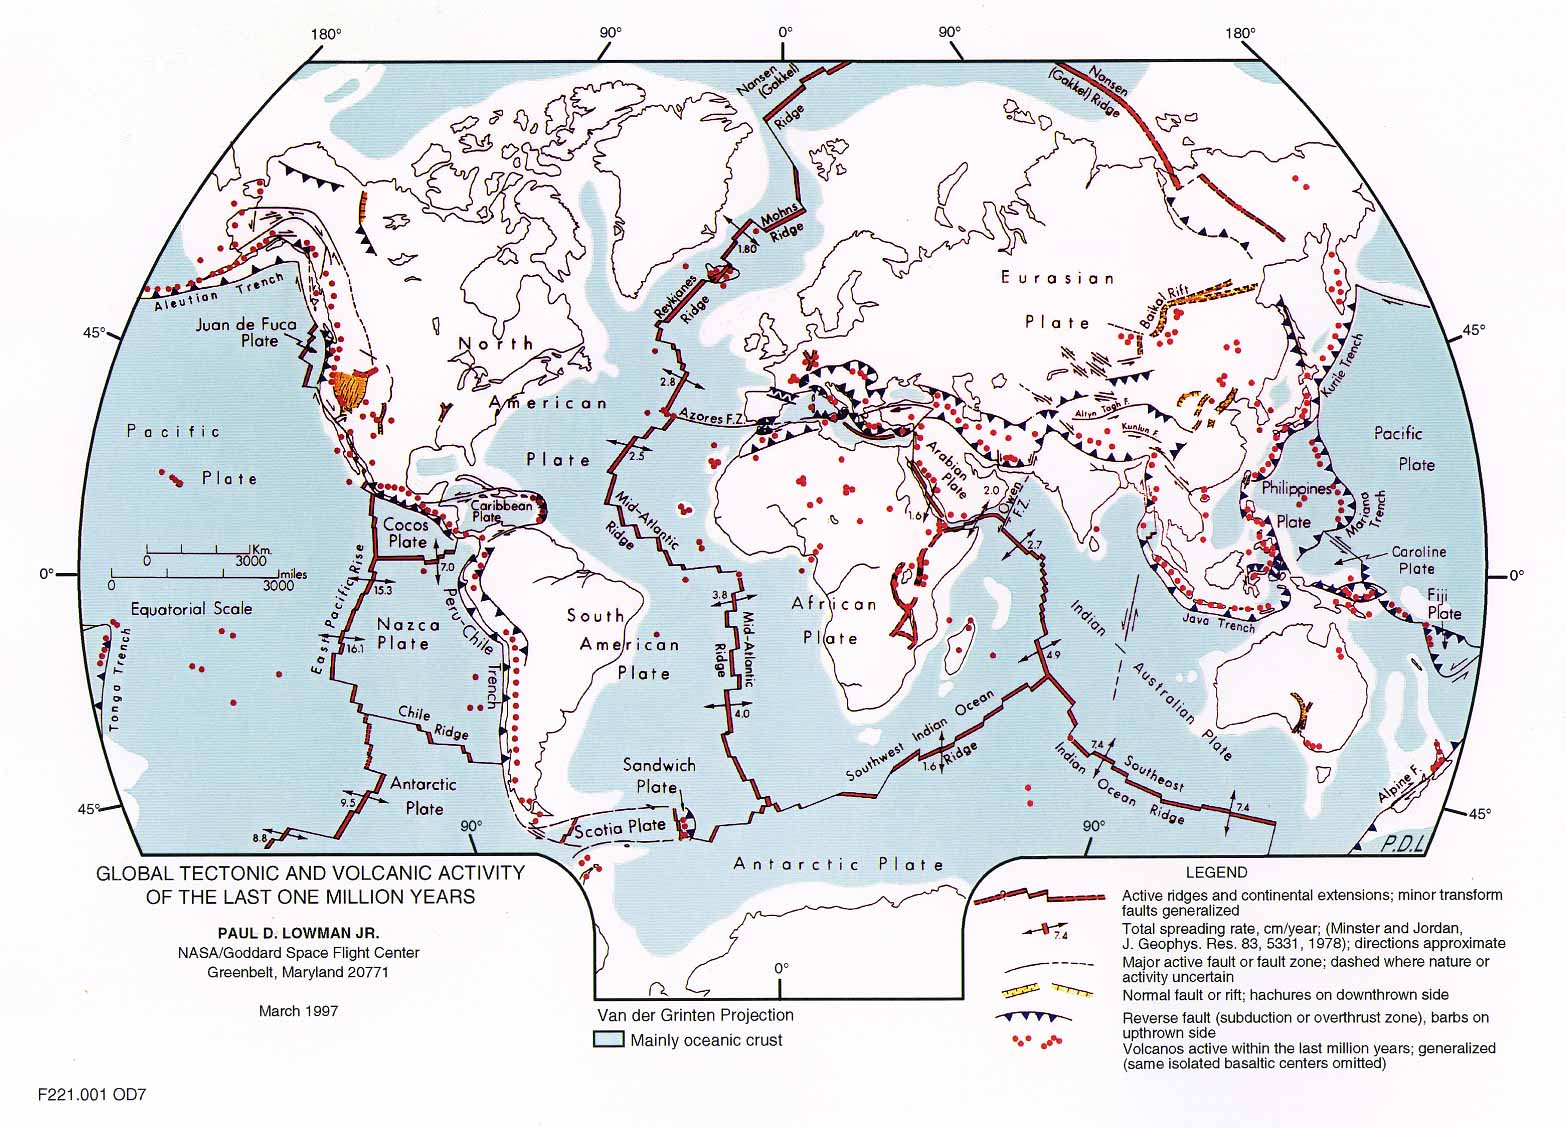 Global Tectonic And Volcanic Activity Of The Last One